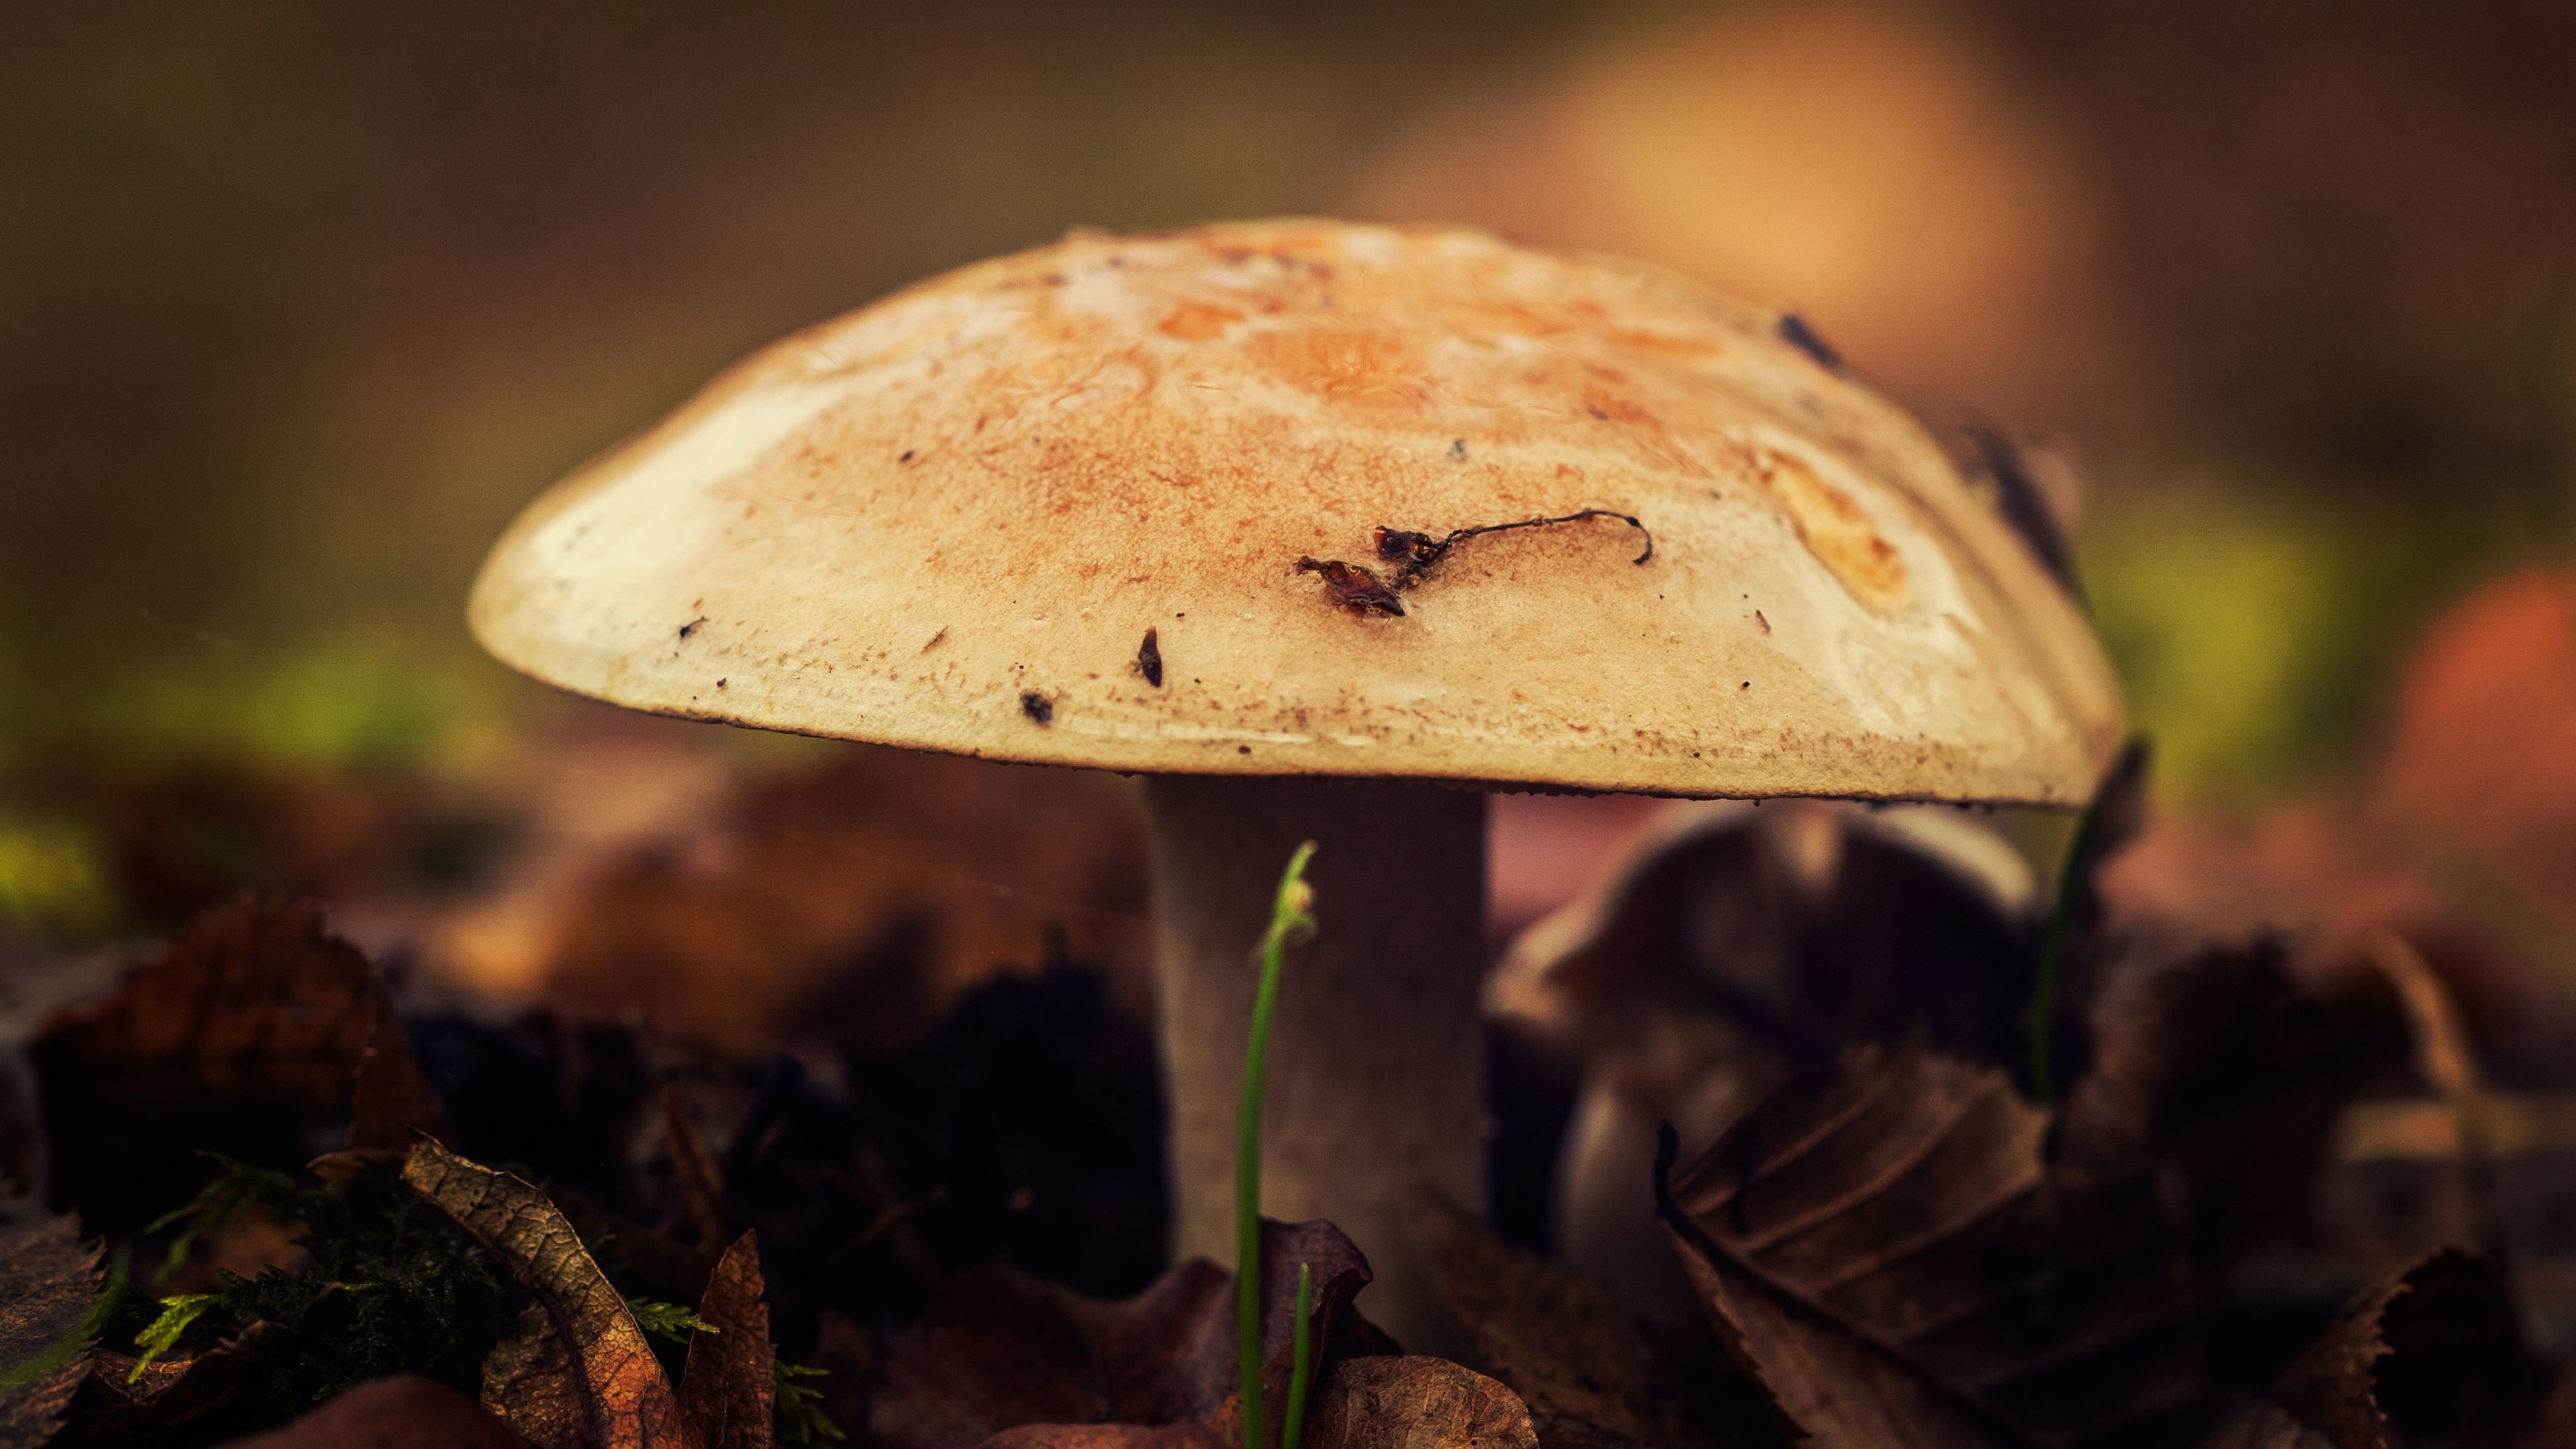 animal themes, nature, animals in the wild, insect, close-up, animal wildlife, no people, mushroom, outdoors, day, one animal, beauty in nature